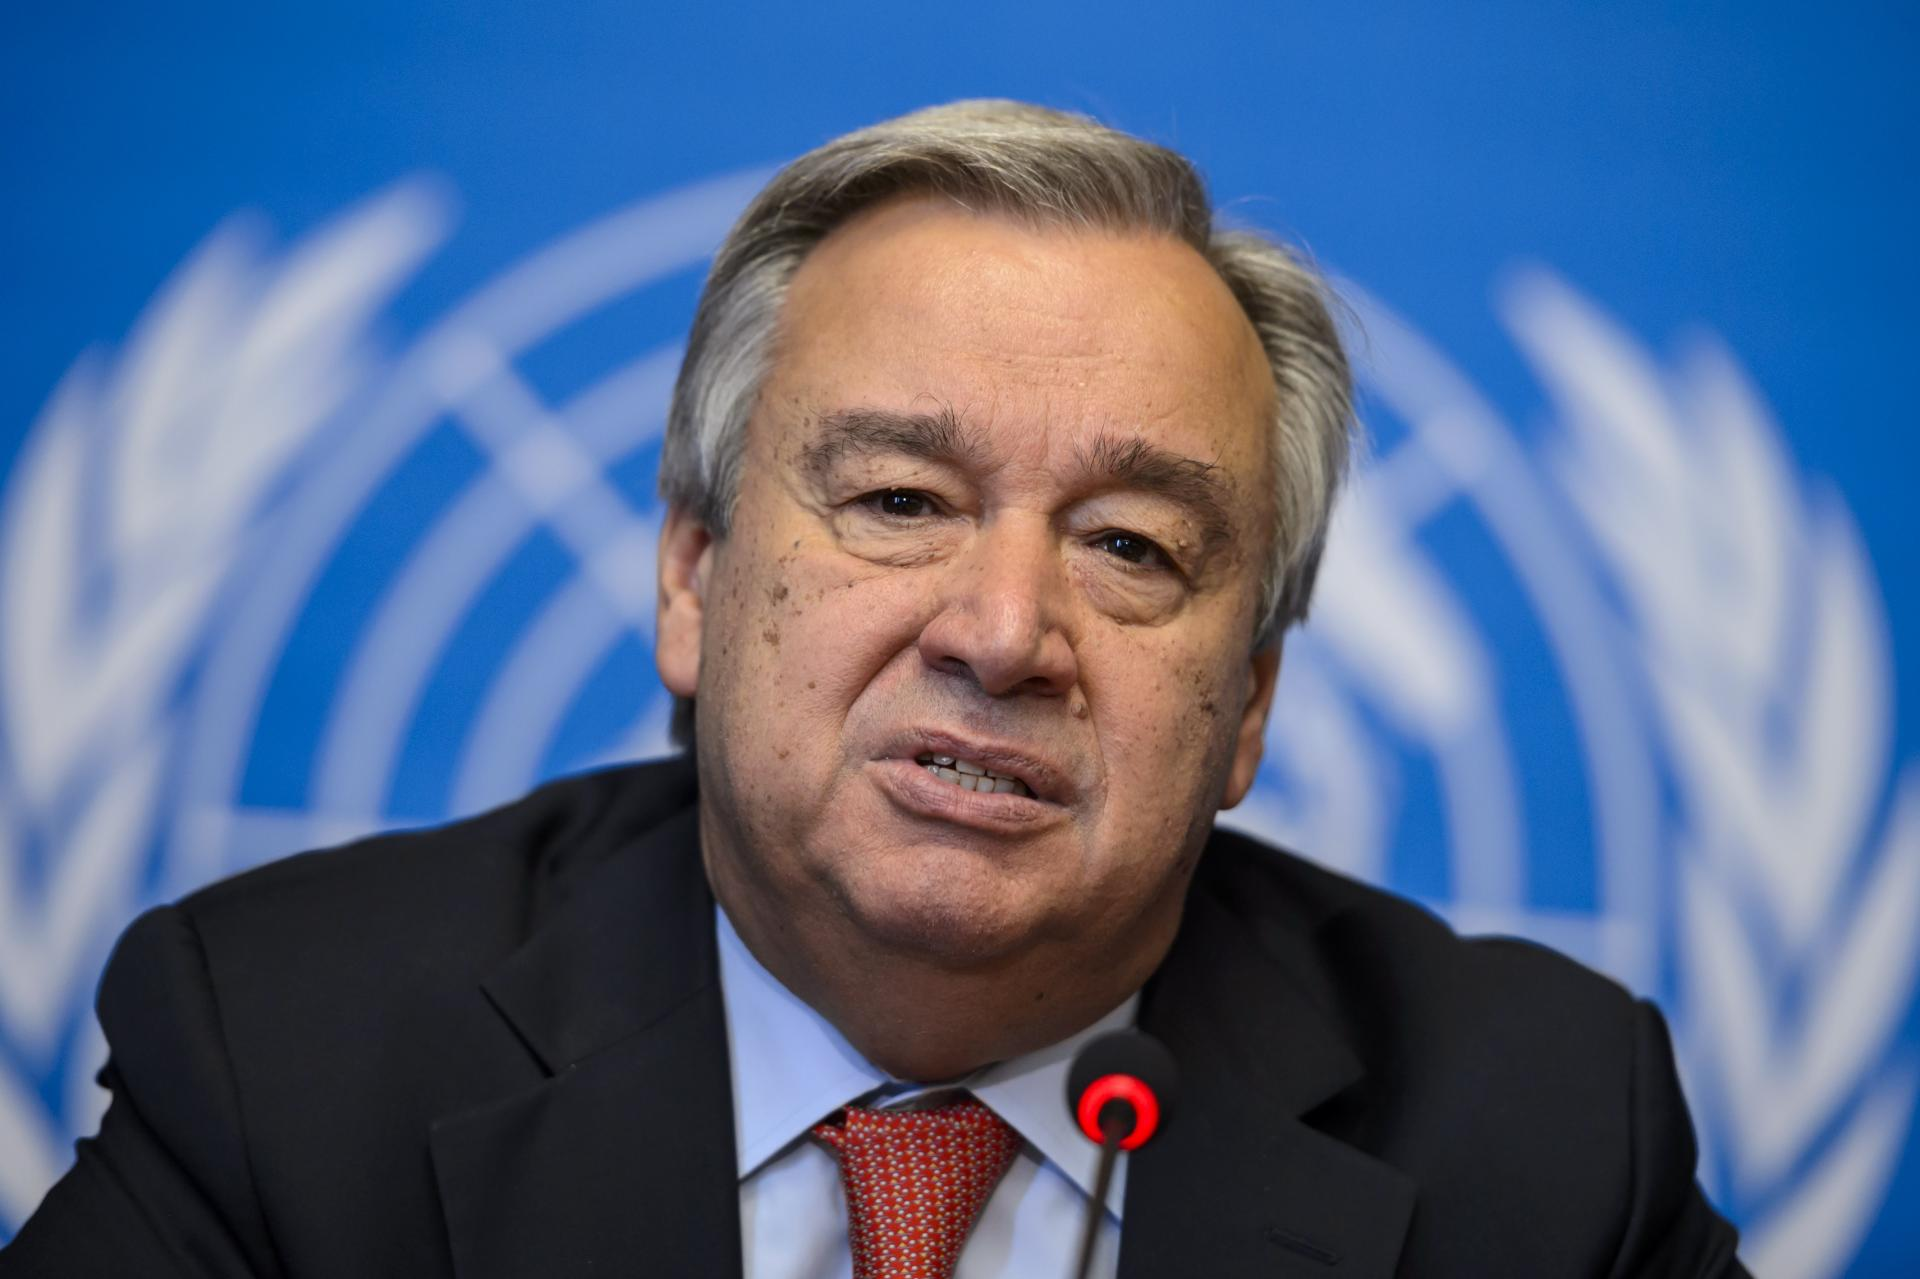 UN secretary-general offers condolences over passenger plane crash in Iran